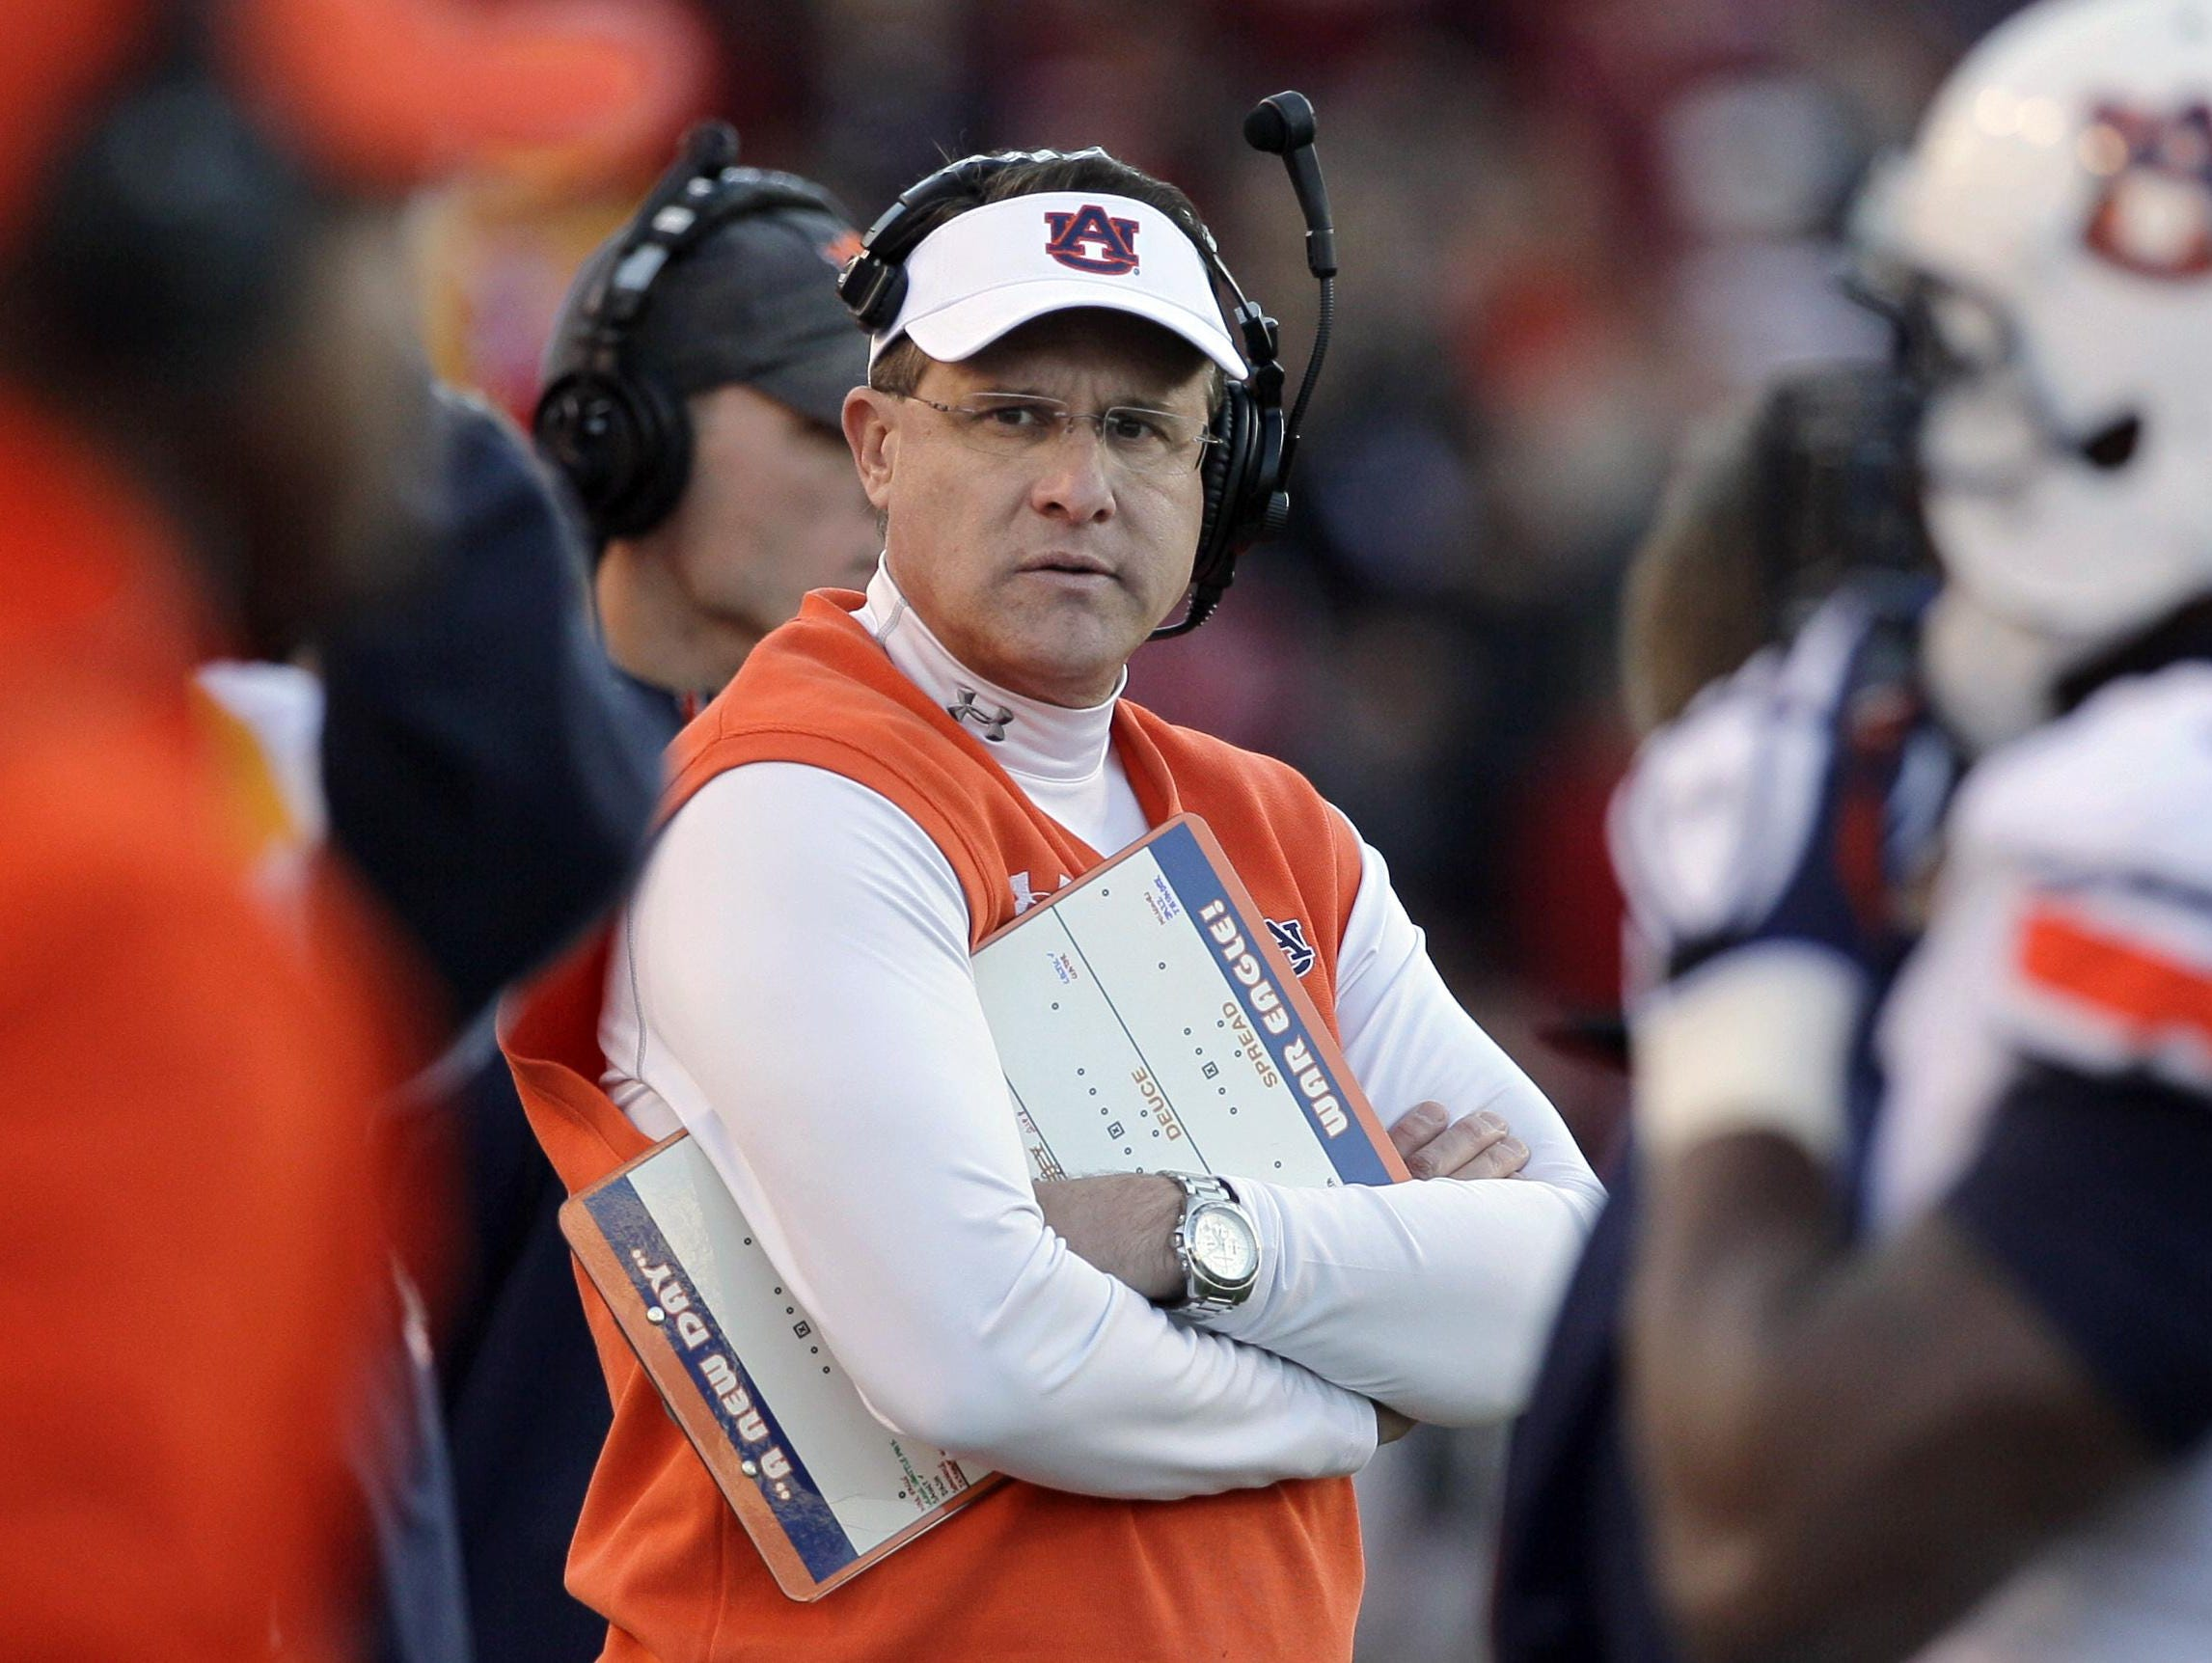 Auburn coach Gus Malzahn will kick off the football portion of the 68th SCACA All-Sports Clinic by leading a session at 2 p.m. Sunday at the TD Convention Center in Greenville.